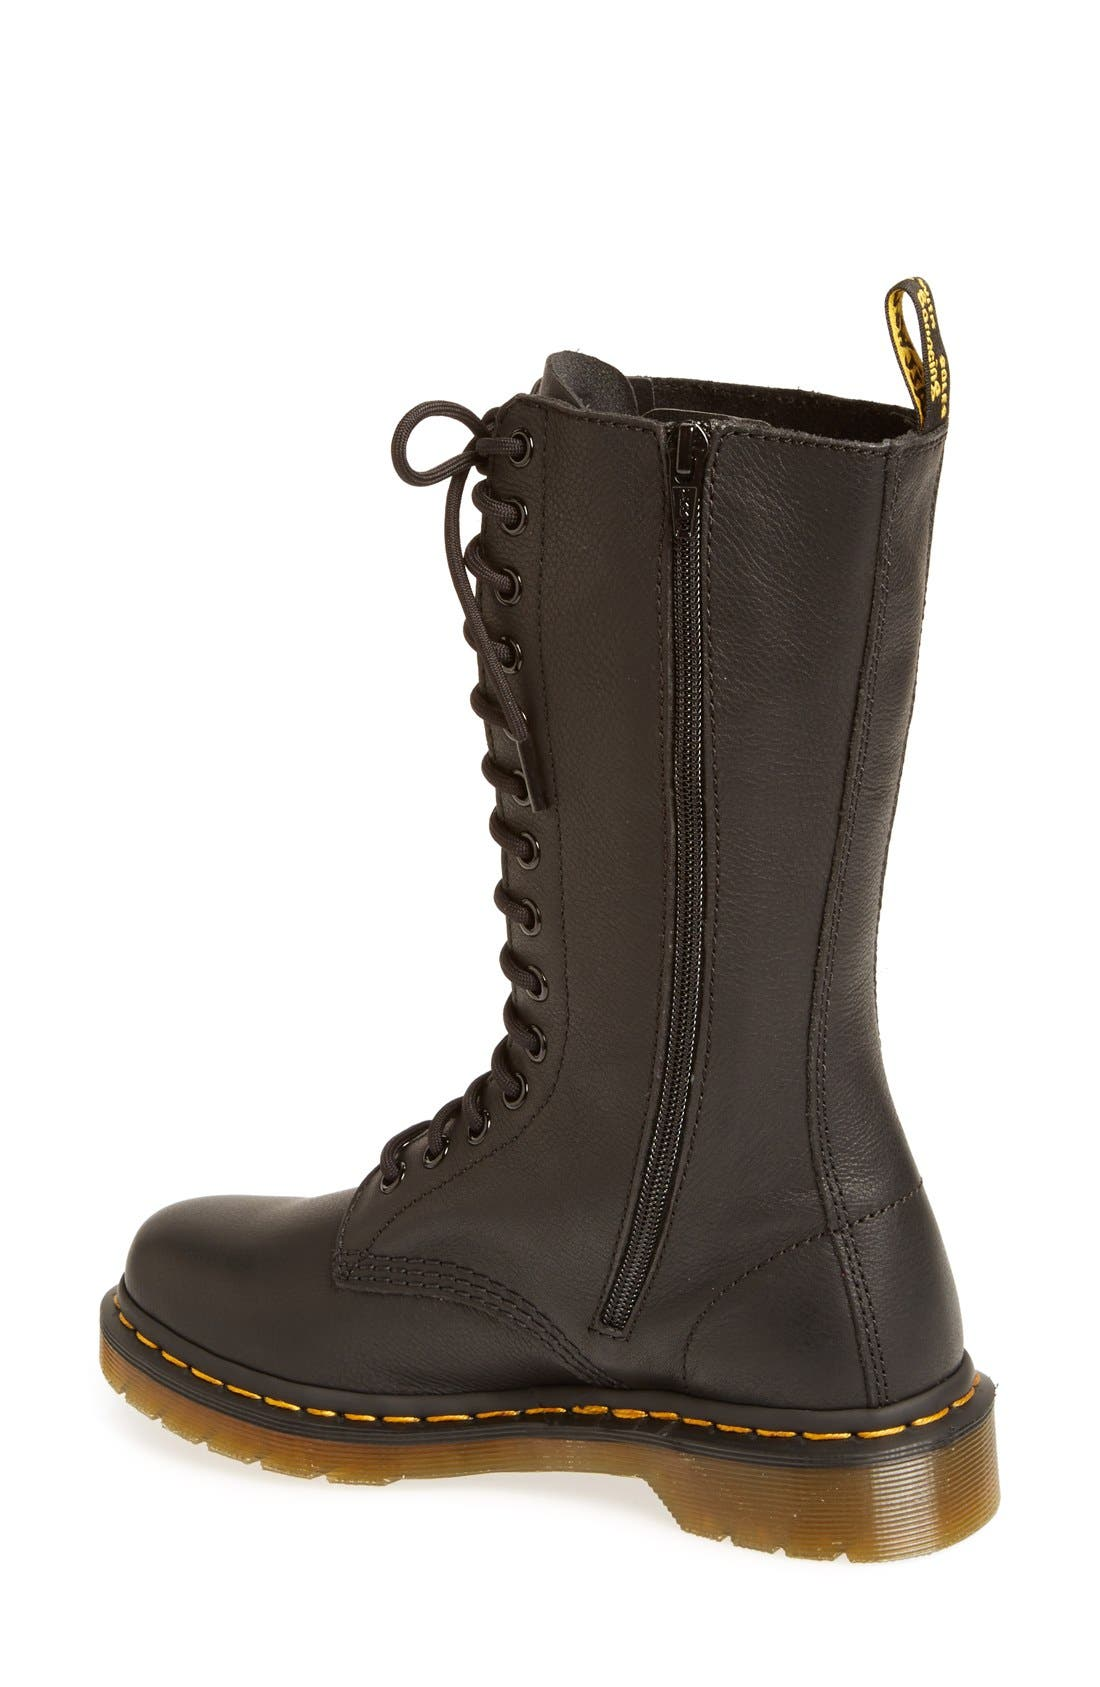 '1B99' Leather Boot,                             Alternate thumbnail 2, color,                             Black Virginia